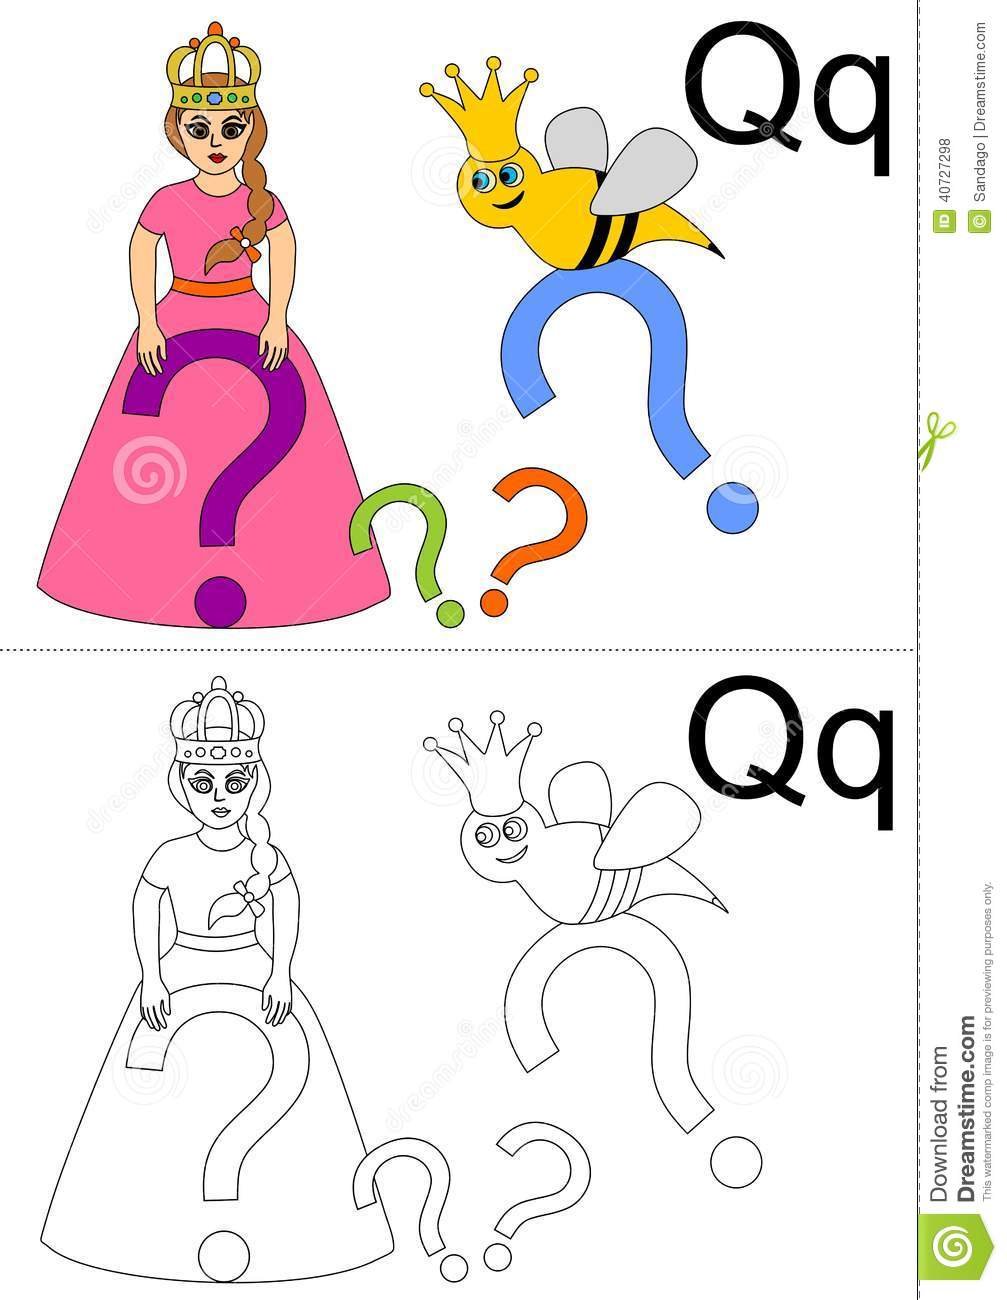 Letter q worksheet stock vector image 40727298 royalty free stock photo robcynllc Image collections